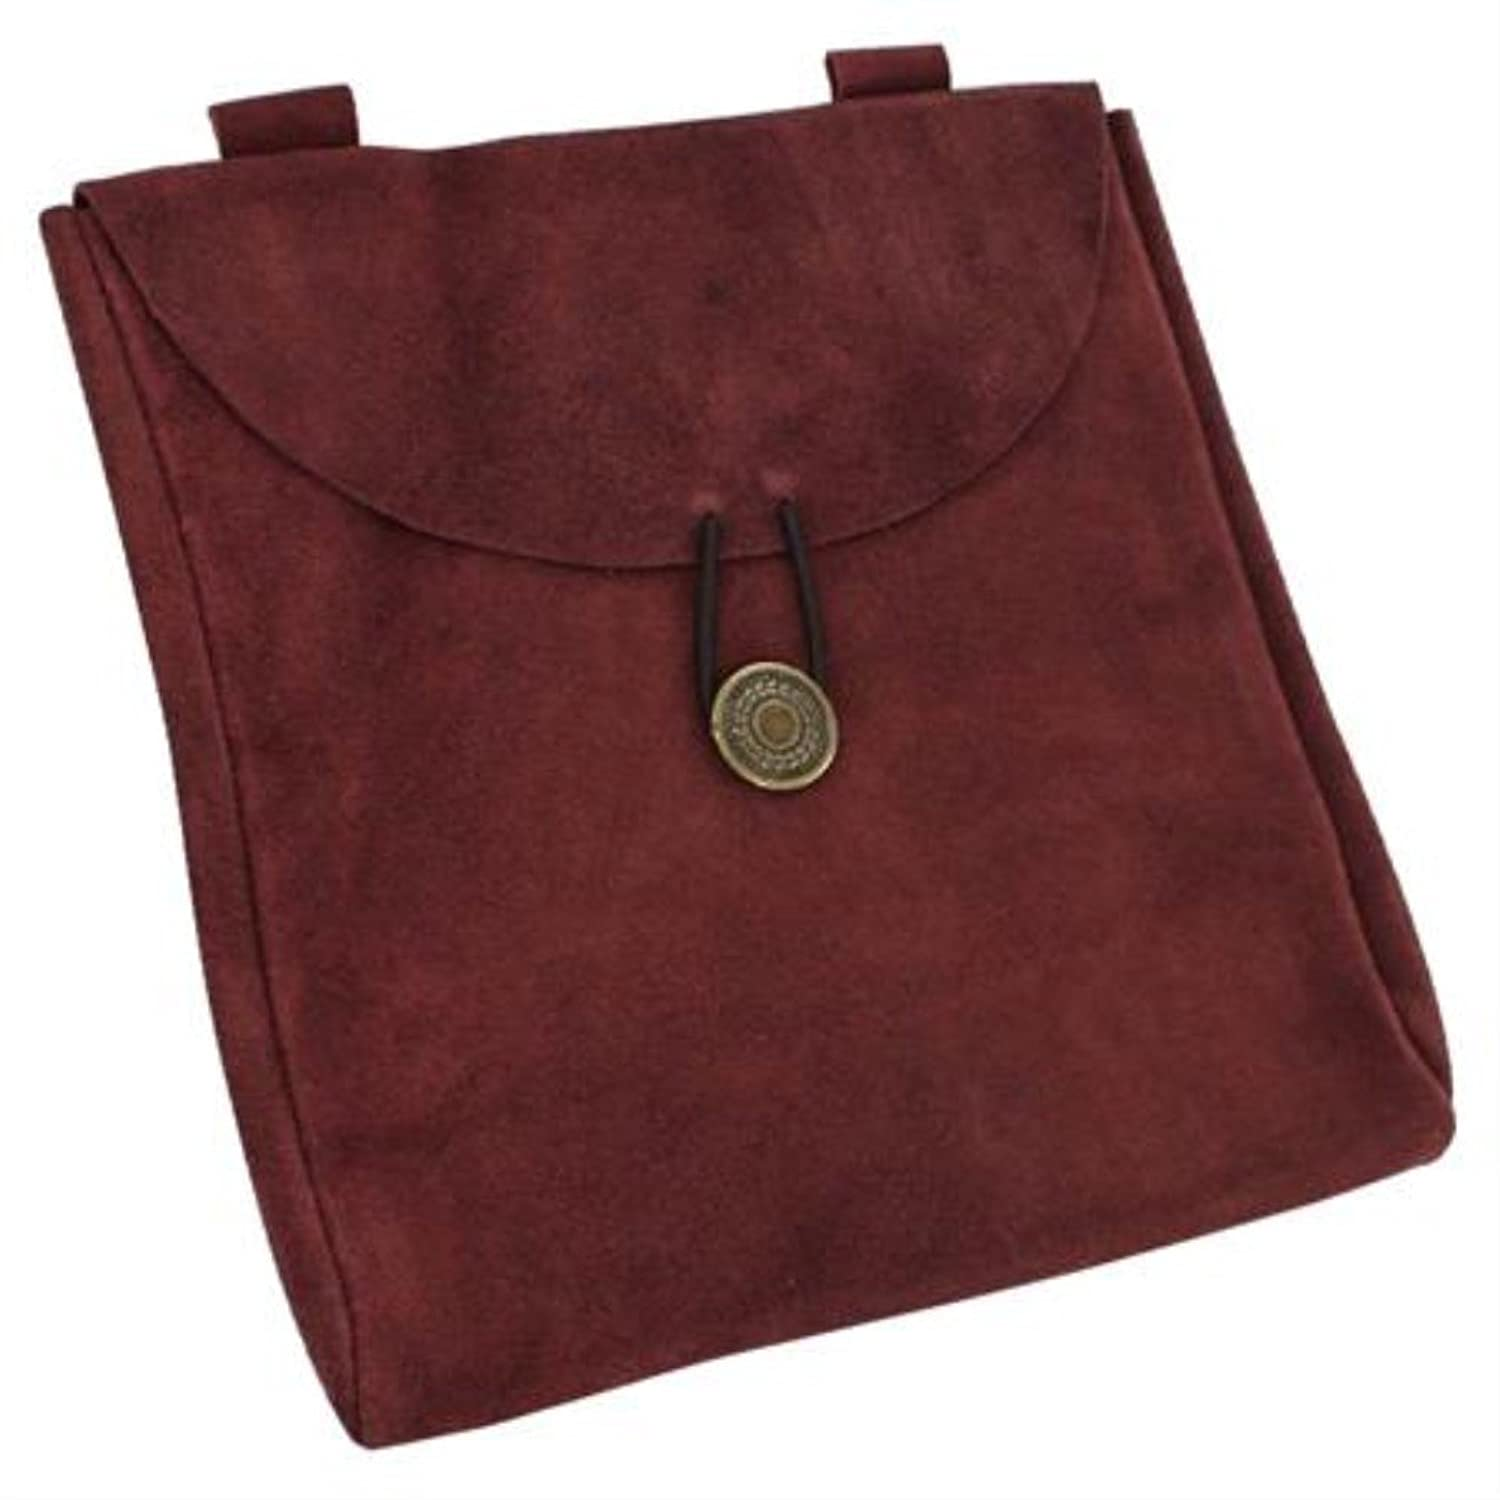 Deluxe Adult Costumes - Medieval Renaissance large dark red claret wine suede leather belt pouch